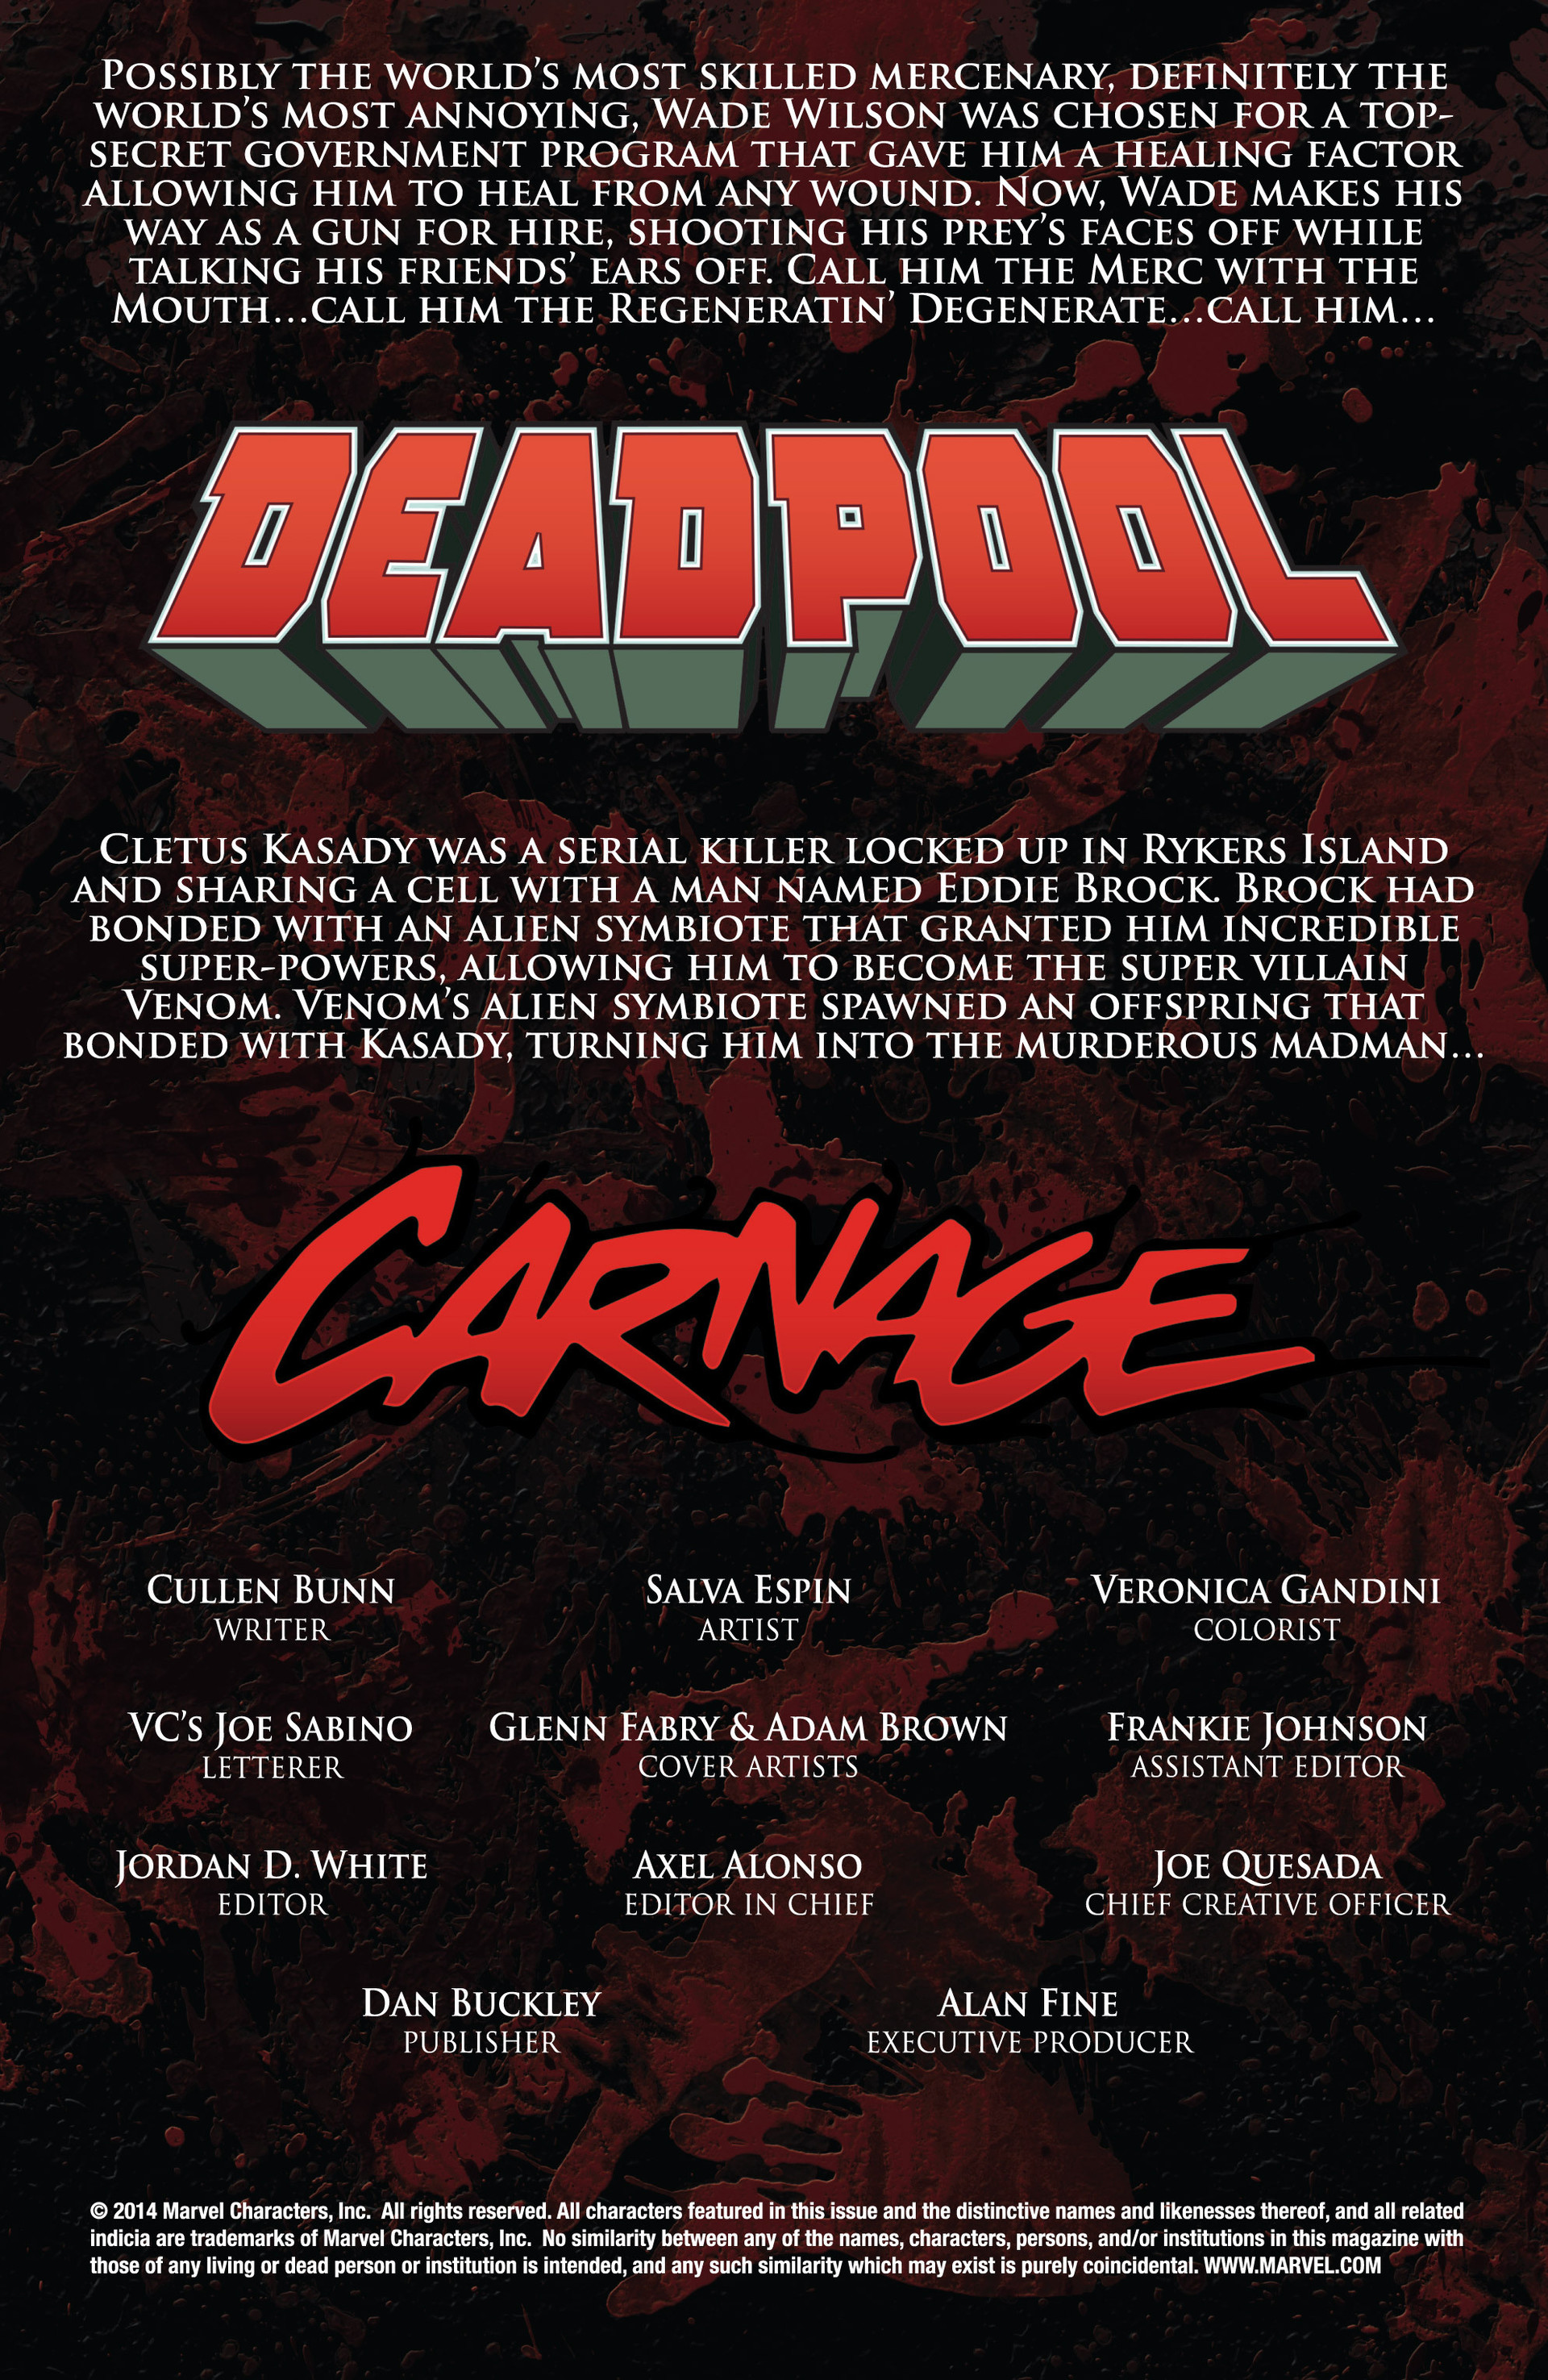 Read online Deadpool vs. Carnage comic -  Issue #1 - 2